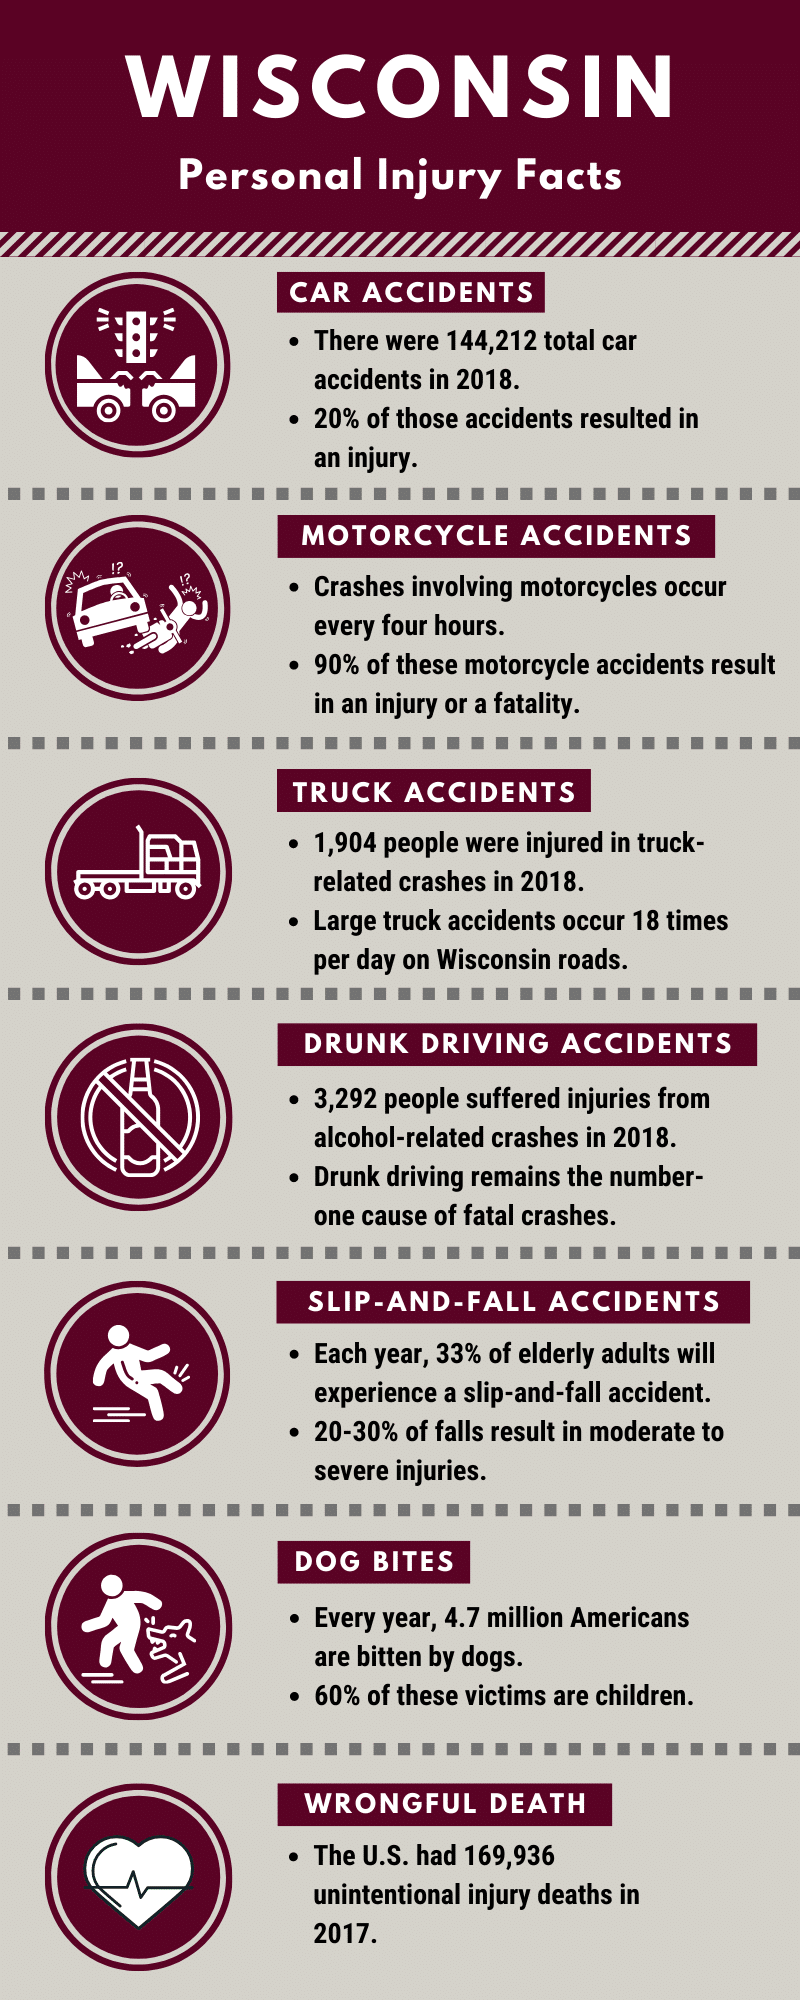 Wisconsin personal injury facts infographic